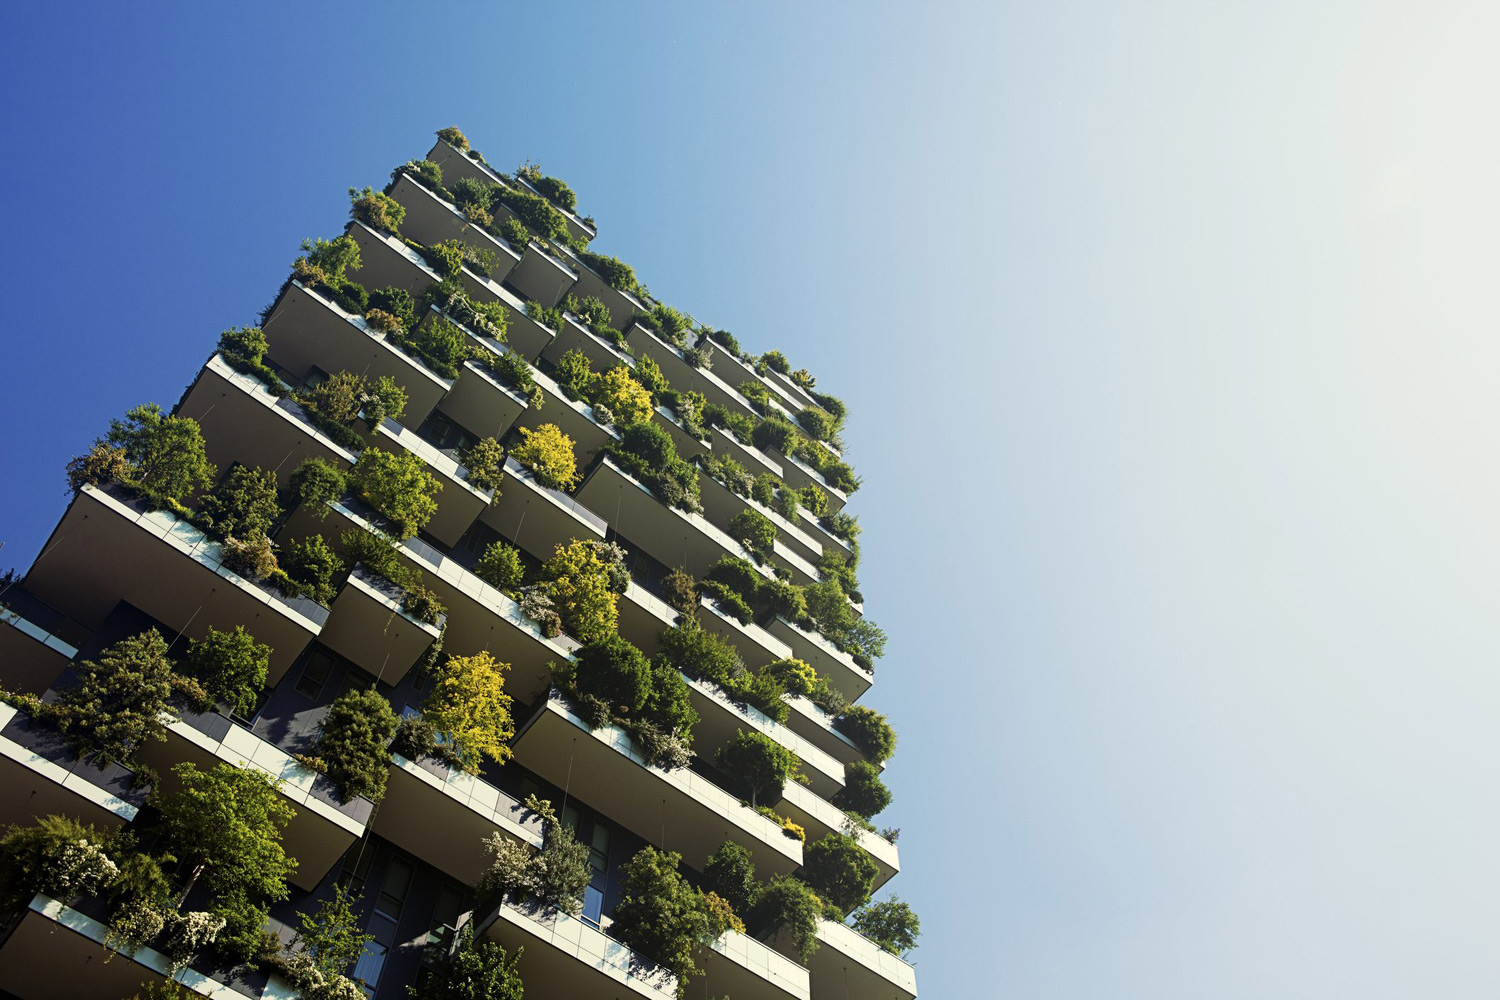 ecodesign-bosco-verticale